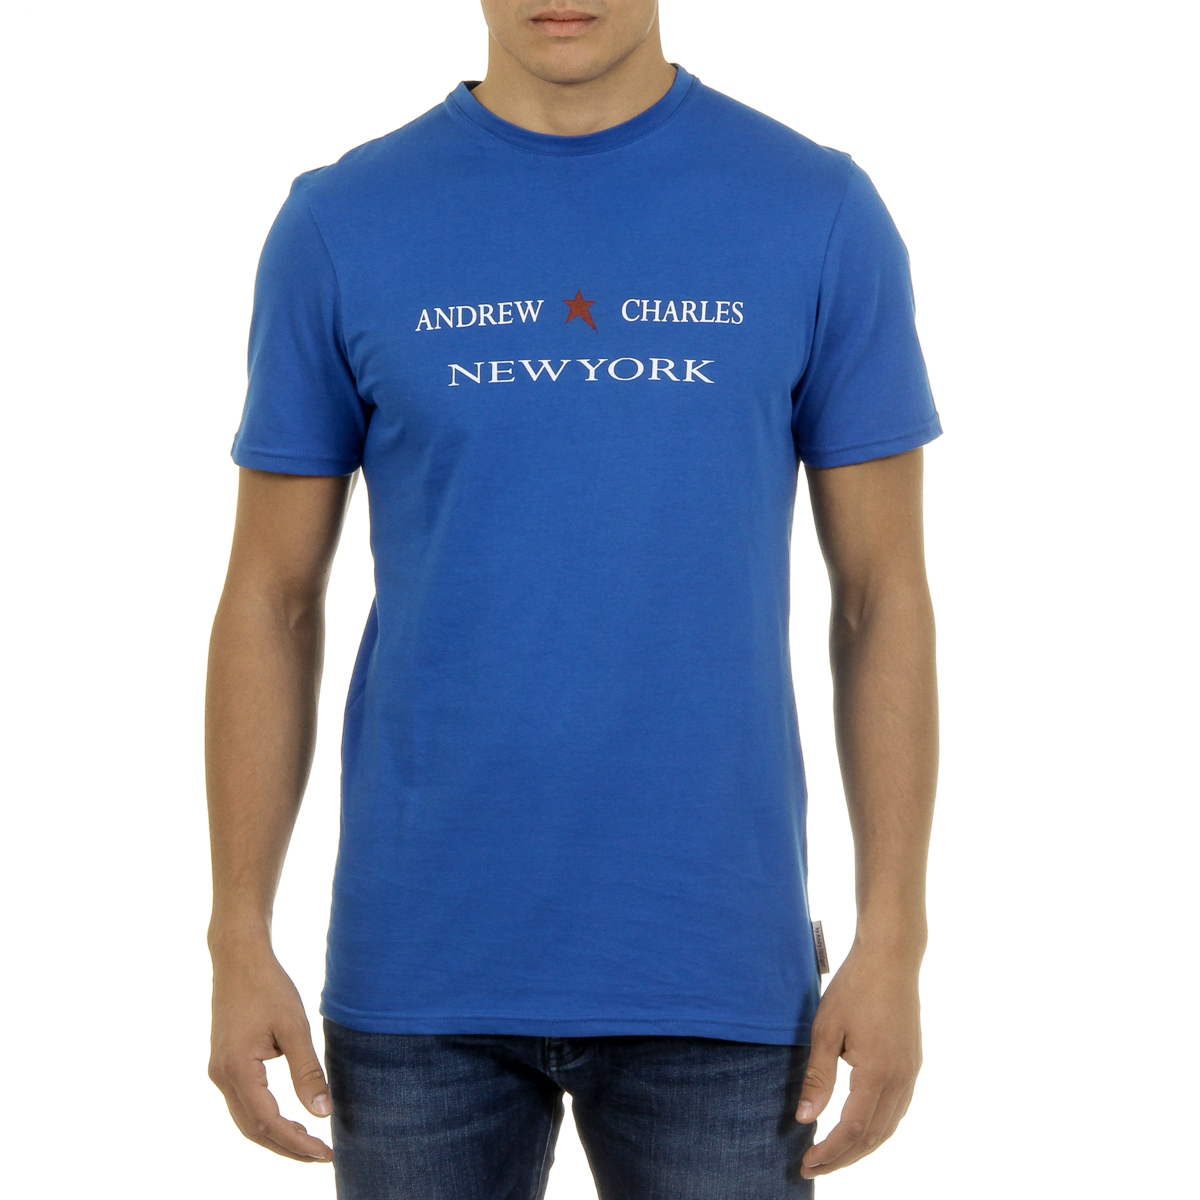 Primary image for Andrew Charles Mens T-Shirt Short Sleeves Round Neck Blue KEITA